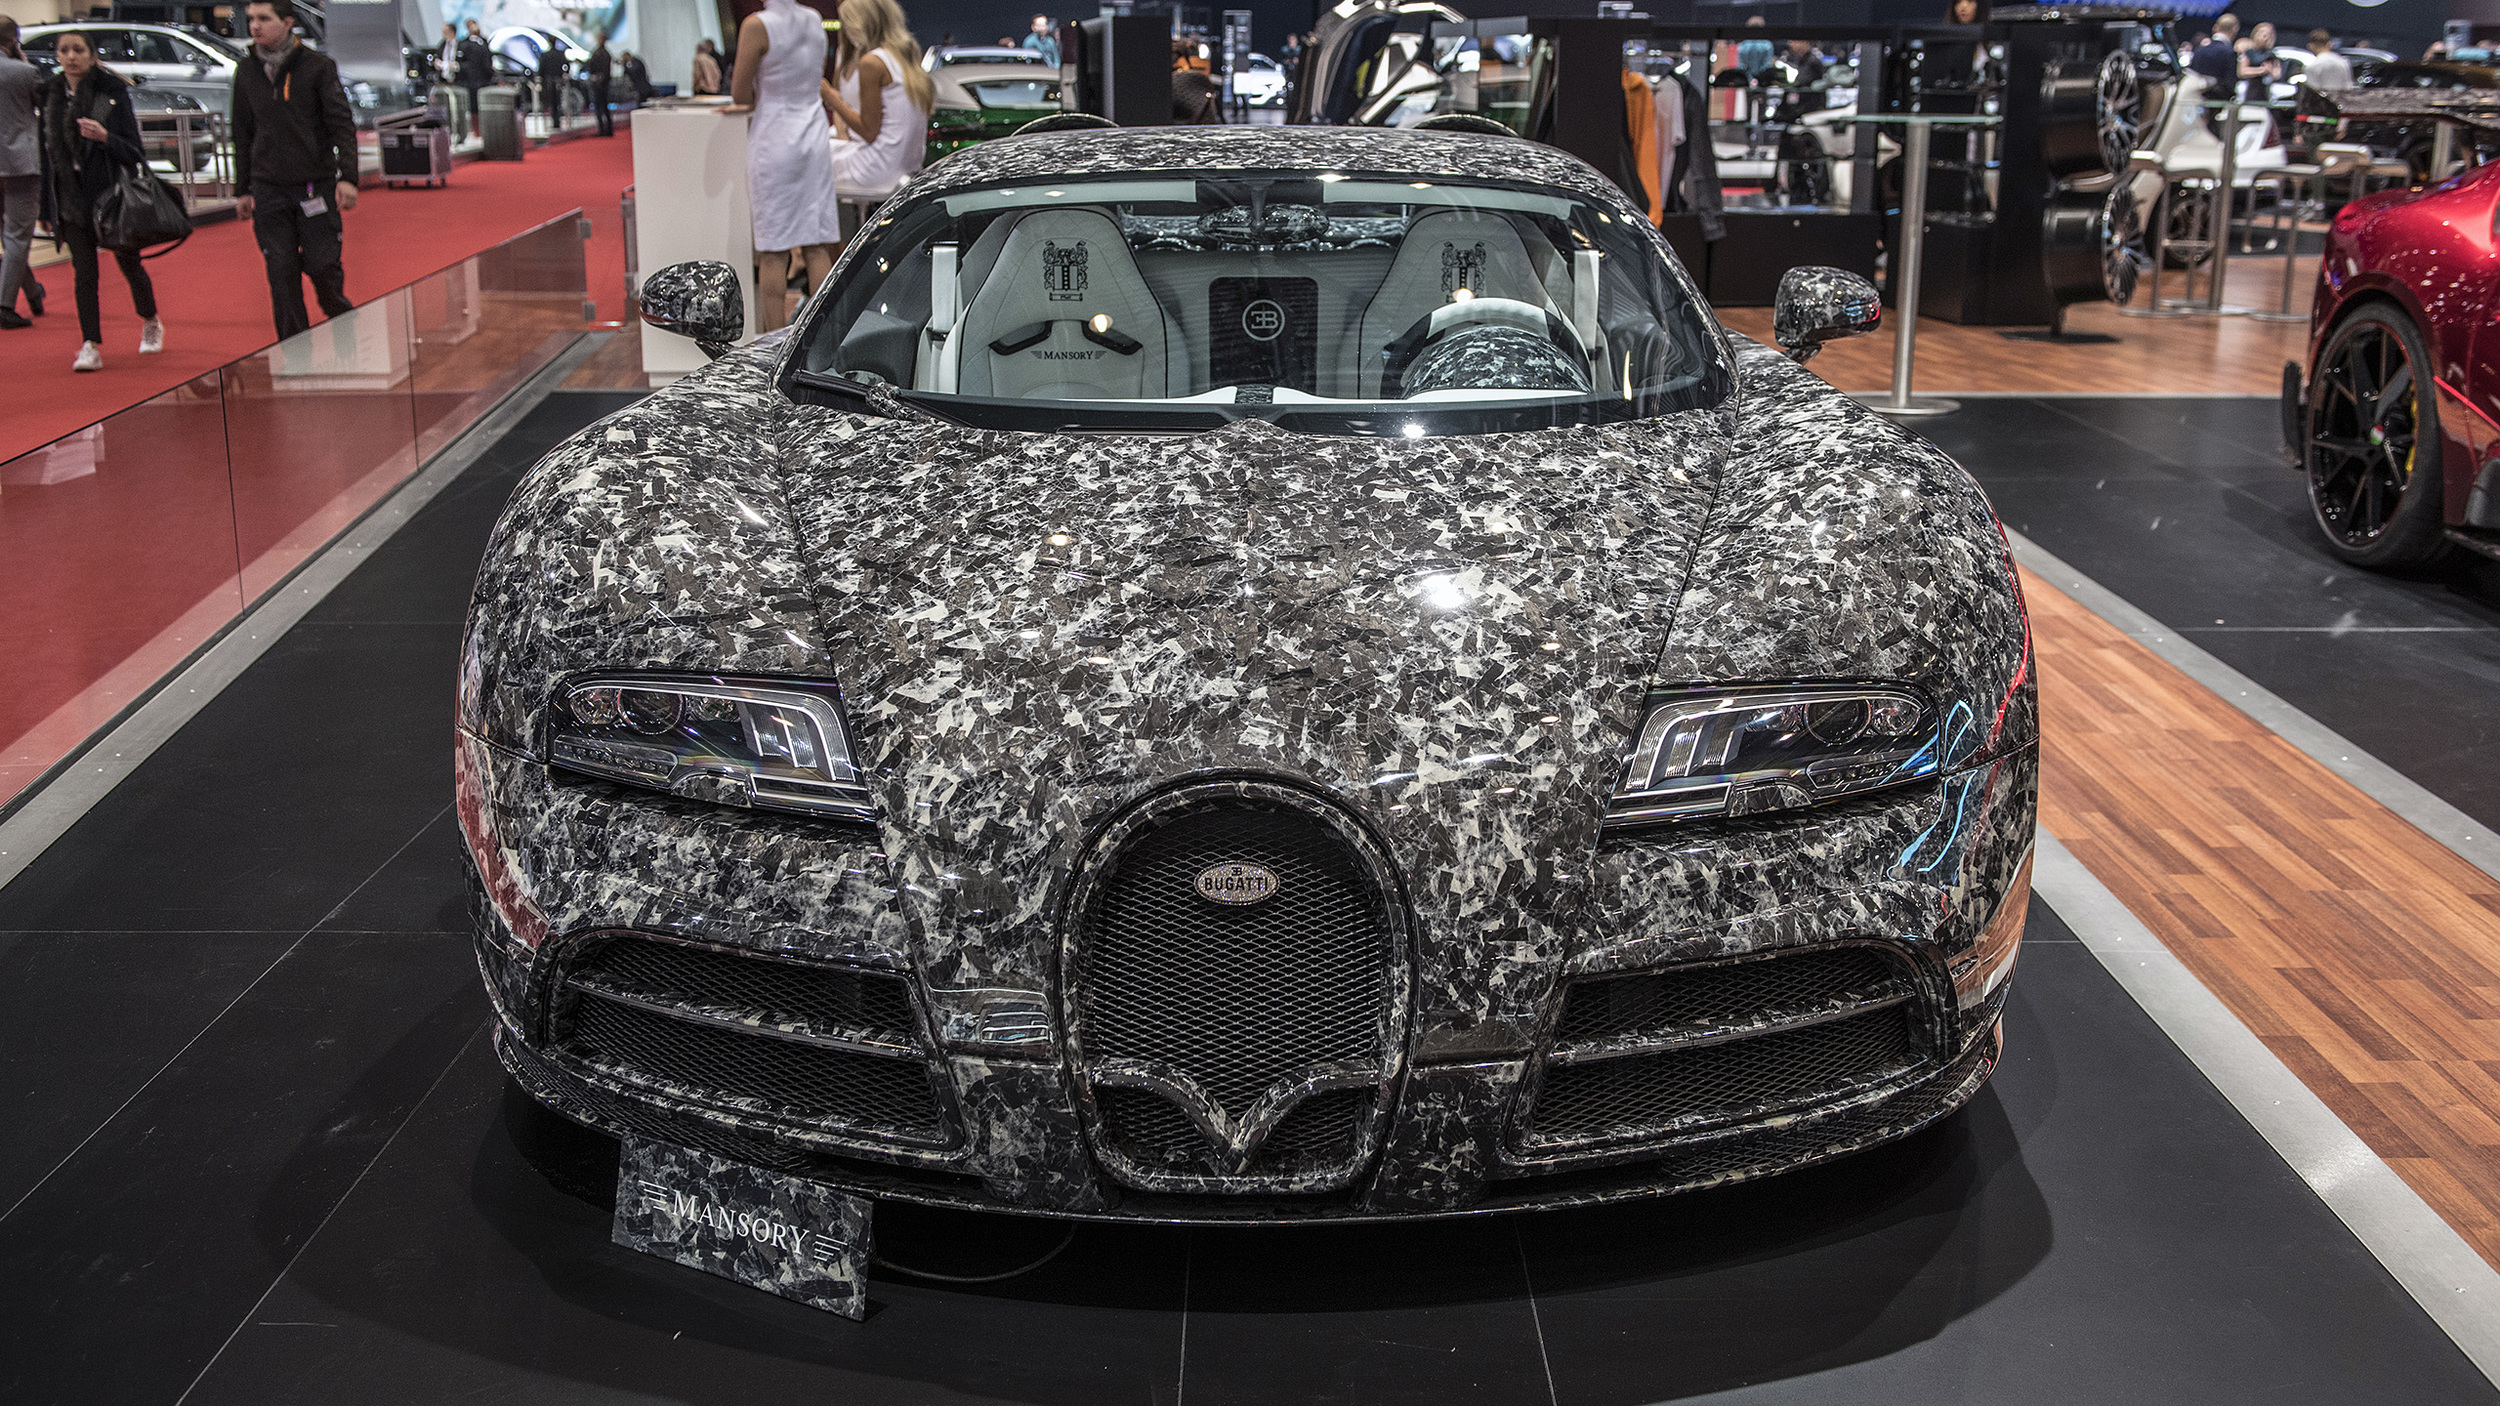 chiron floyd bugatti order pays million the pre to mayweather for diamond